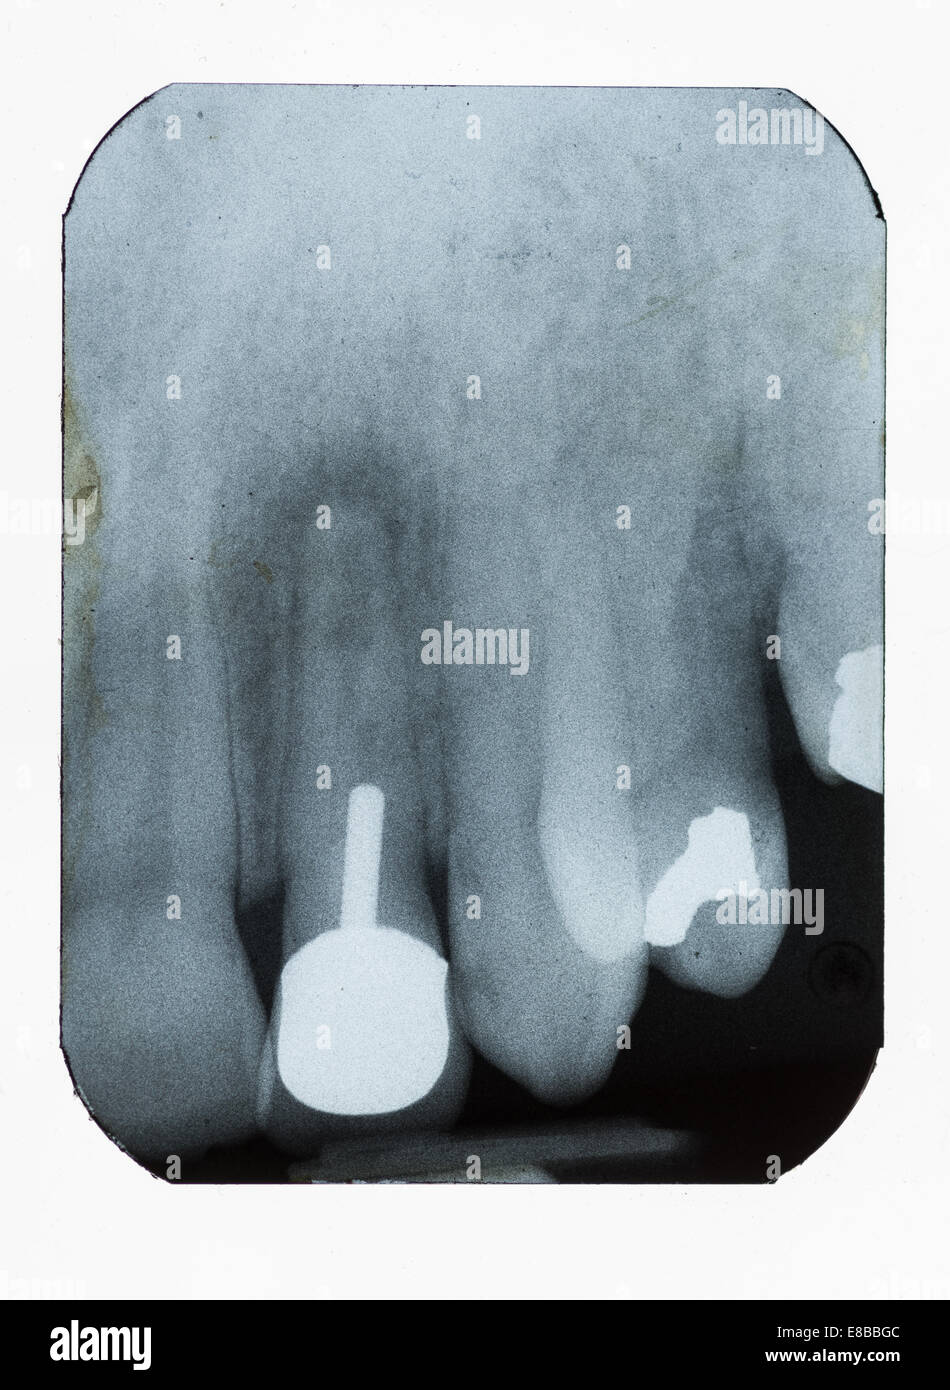 dental xray showing fillings implant and bone density loss - Stock Image